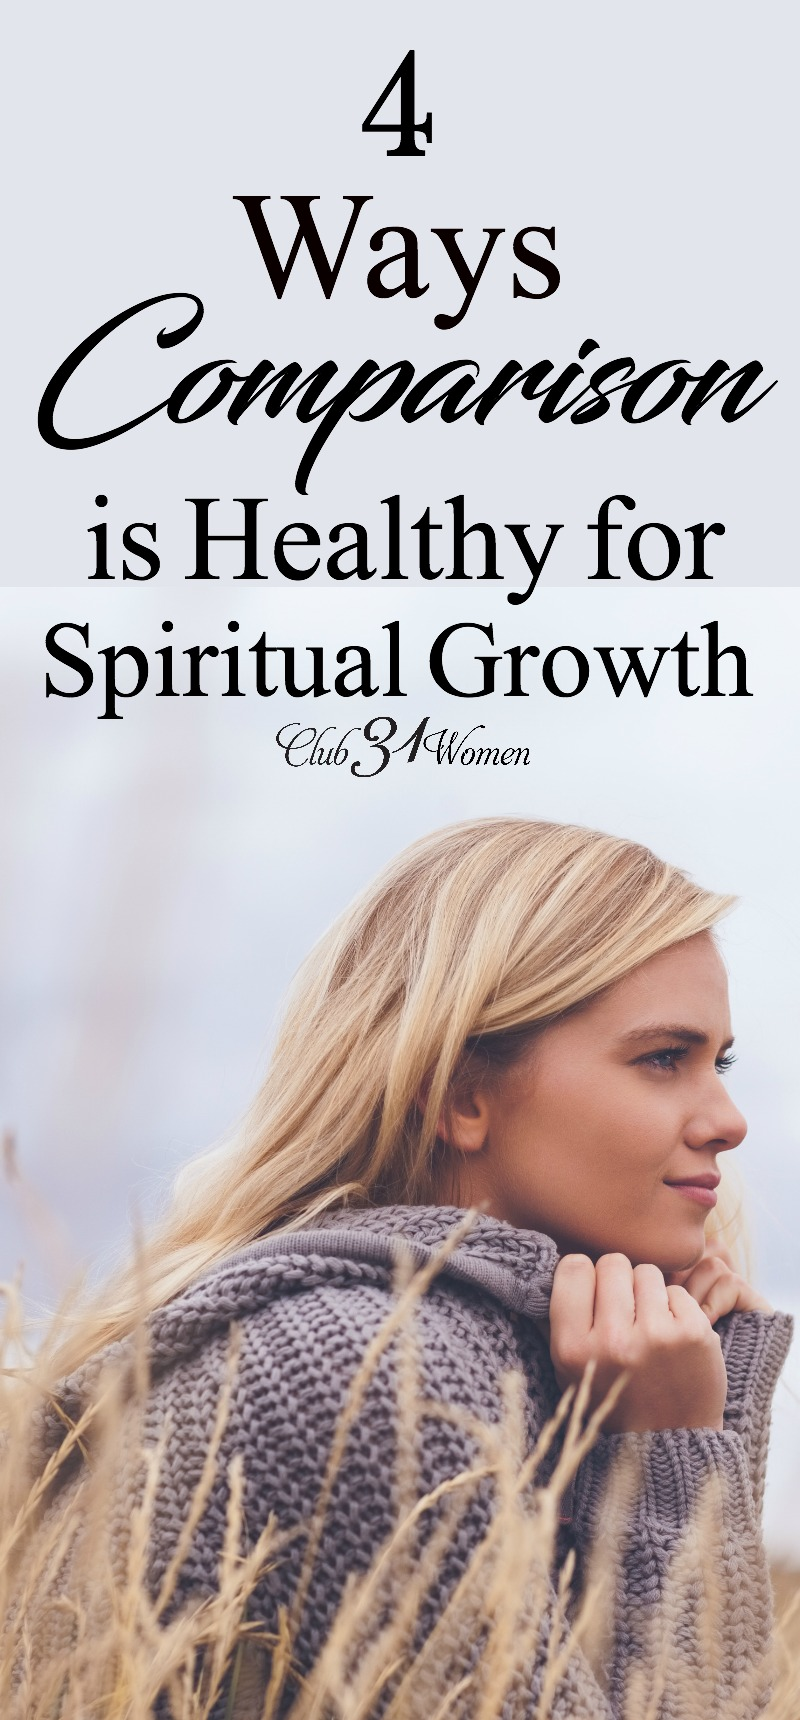 Comparison is often a destructive tool that can leave us feeling less than. But there are times when comparison is good and healthy for spiritual growth. via @Club31Women